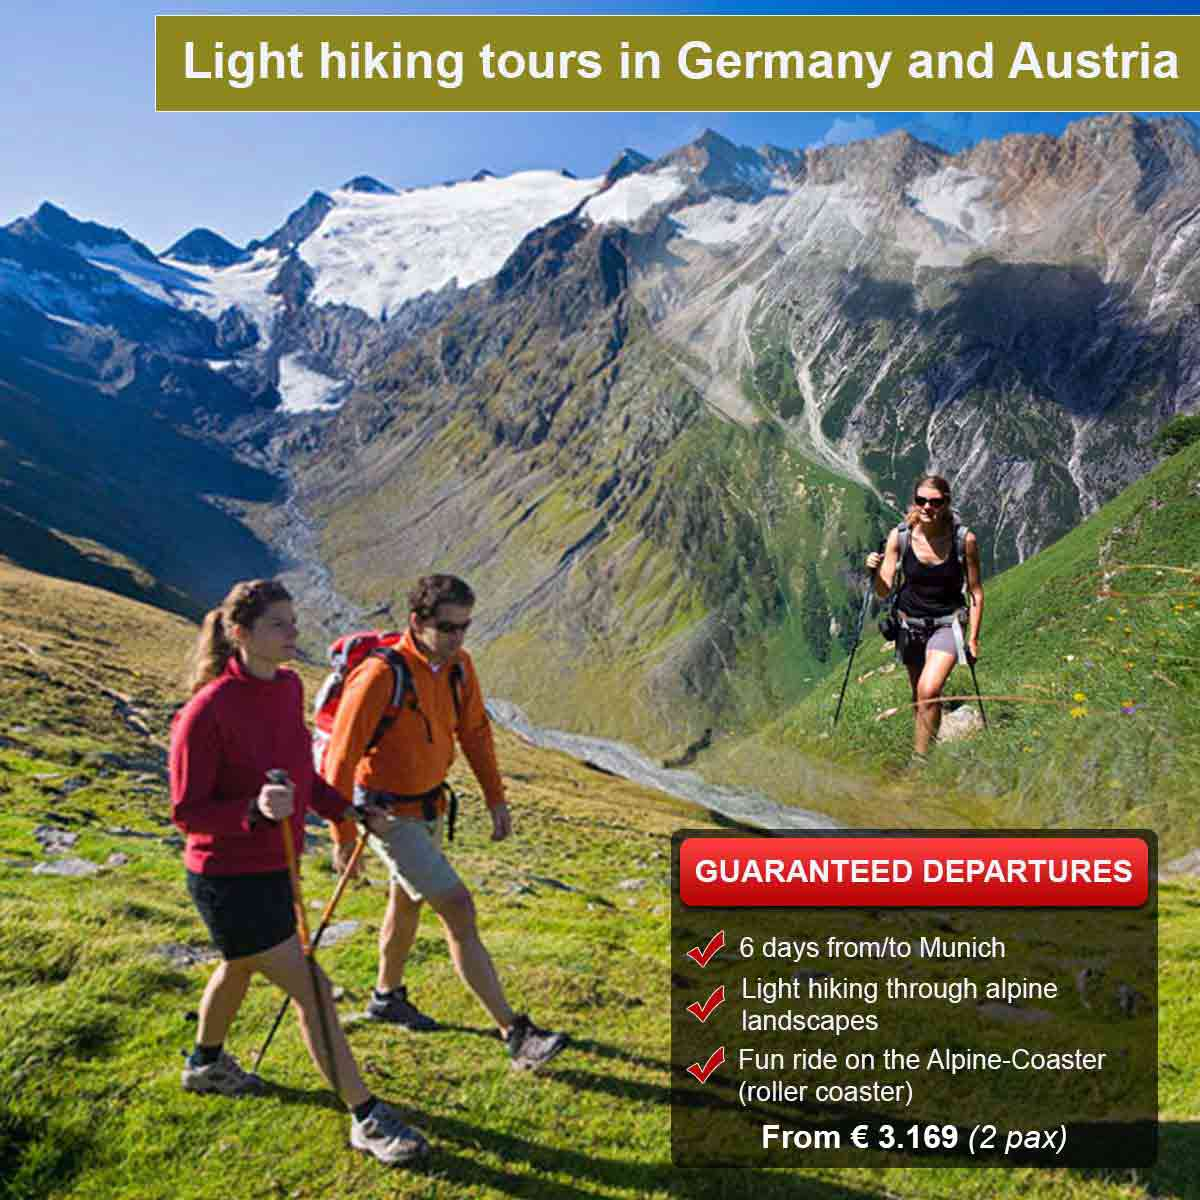 Light hiking tours in Germany and Austria